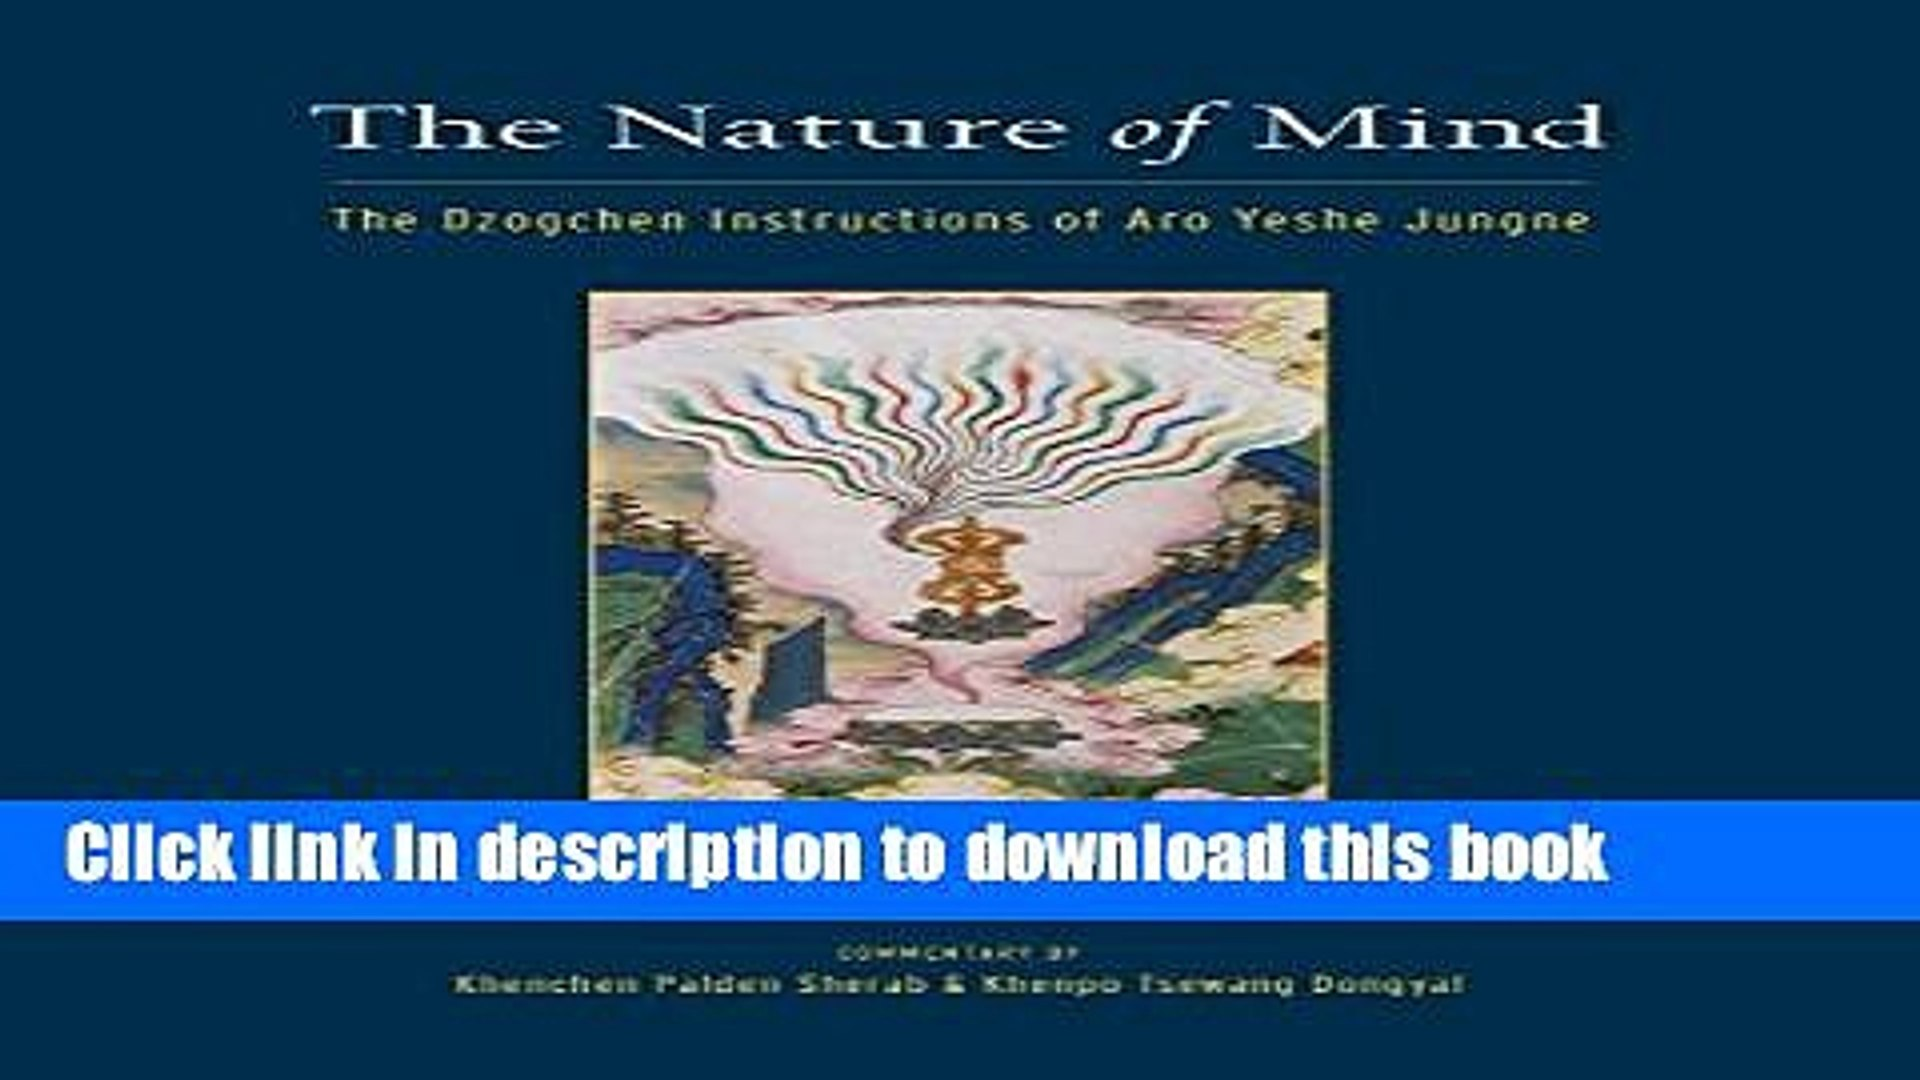 Ebook The Nature of Mind: The Dzogchen Instructions of Aro Yeshe Jungne Free Download